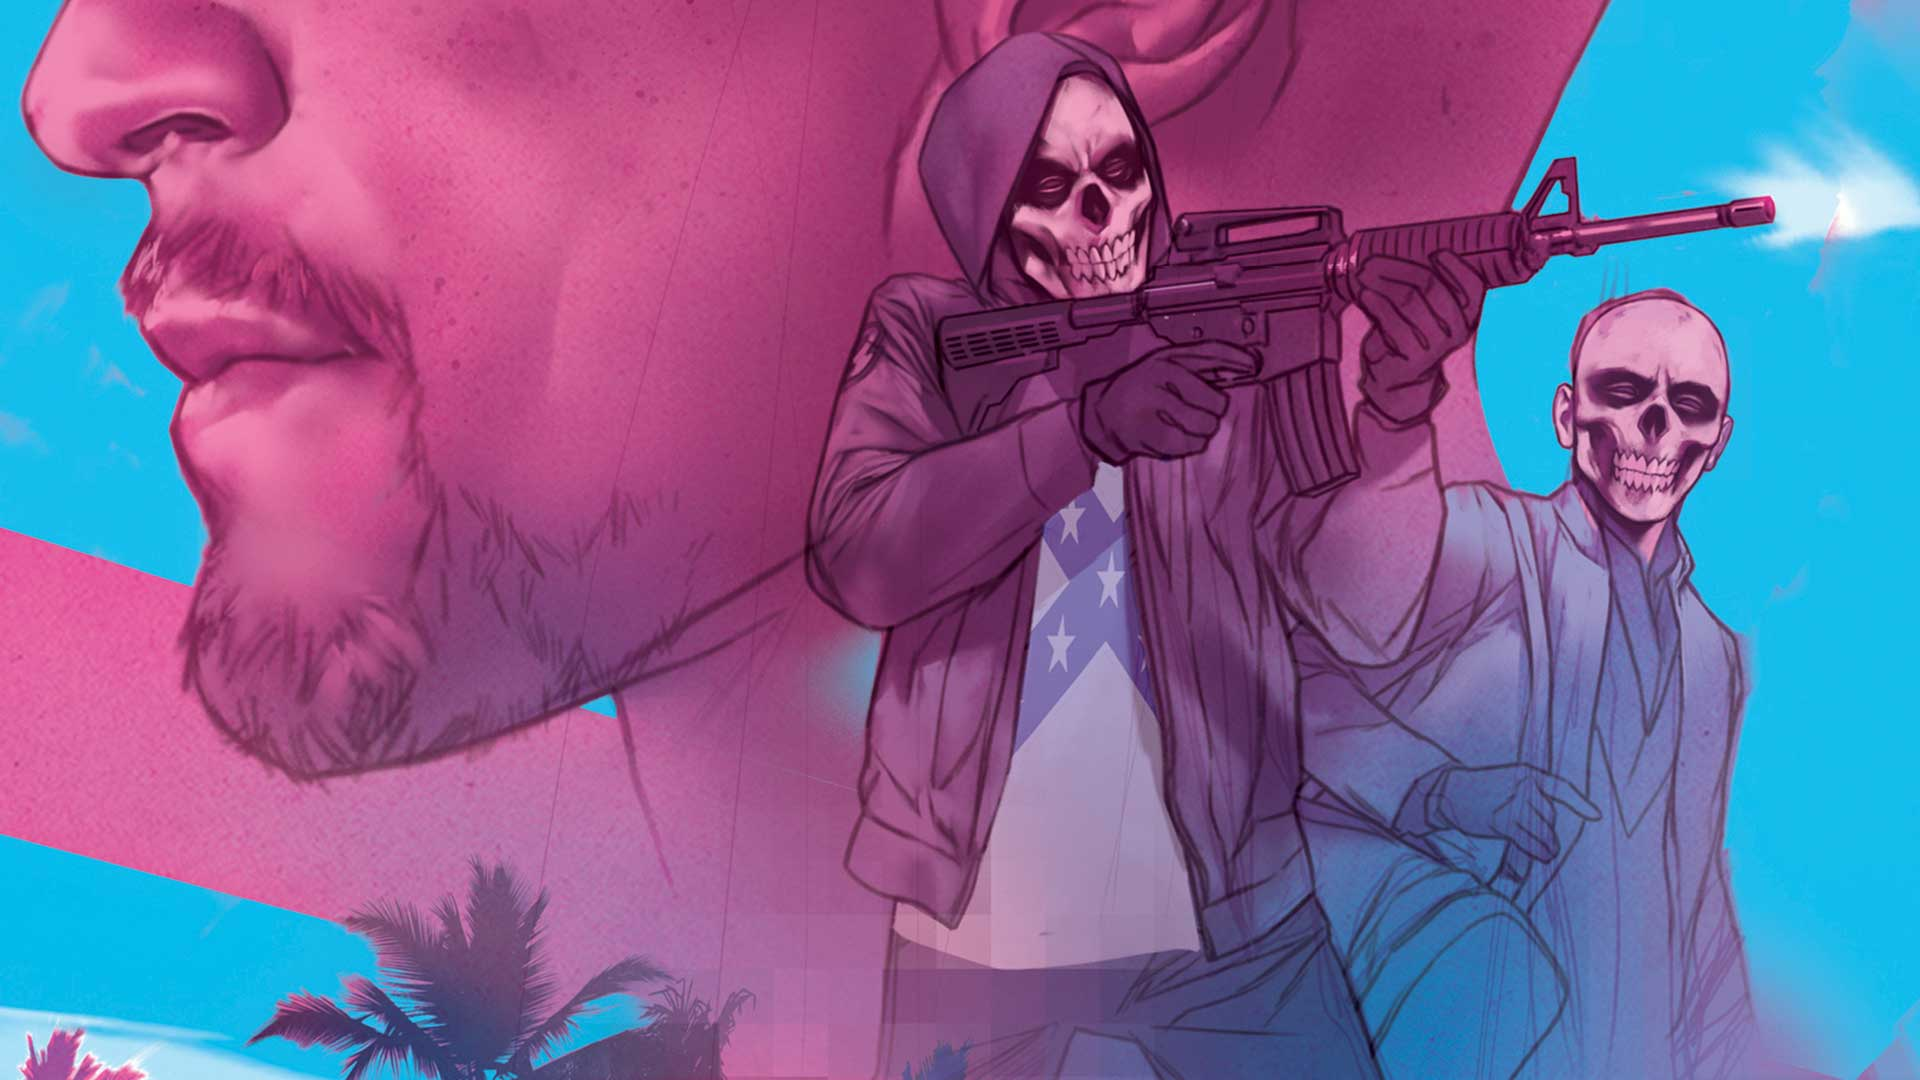 'American Carnage' has a captivating story, gritty art, and strong characters.